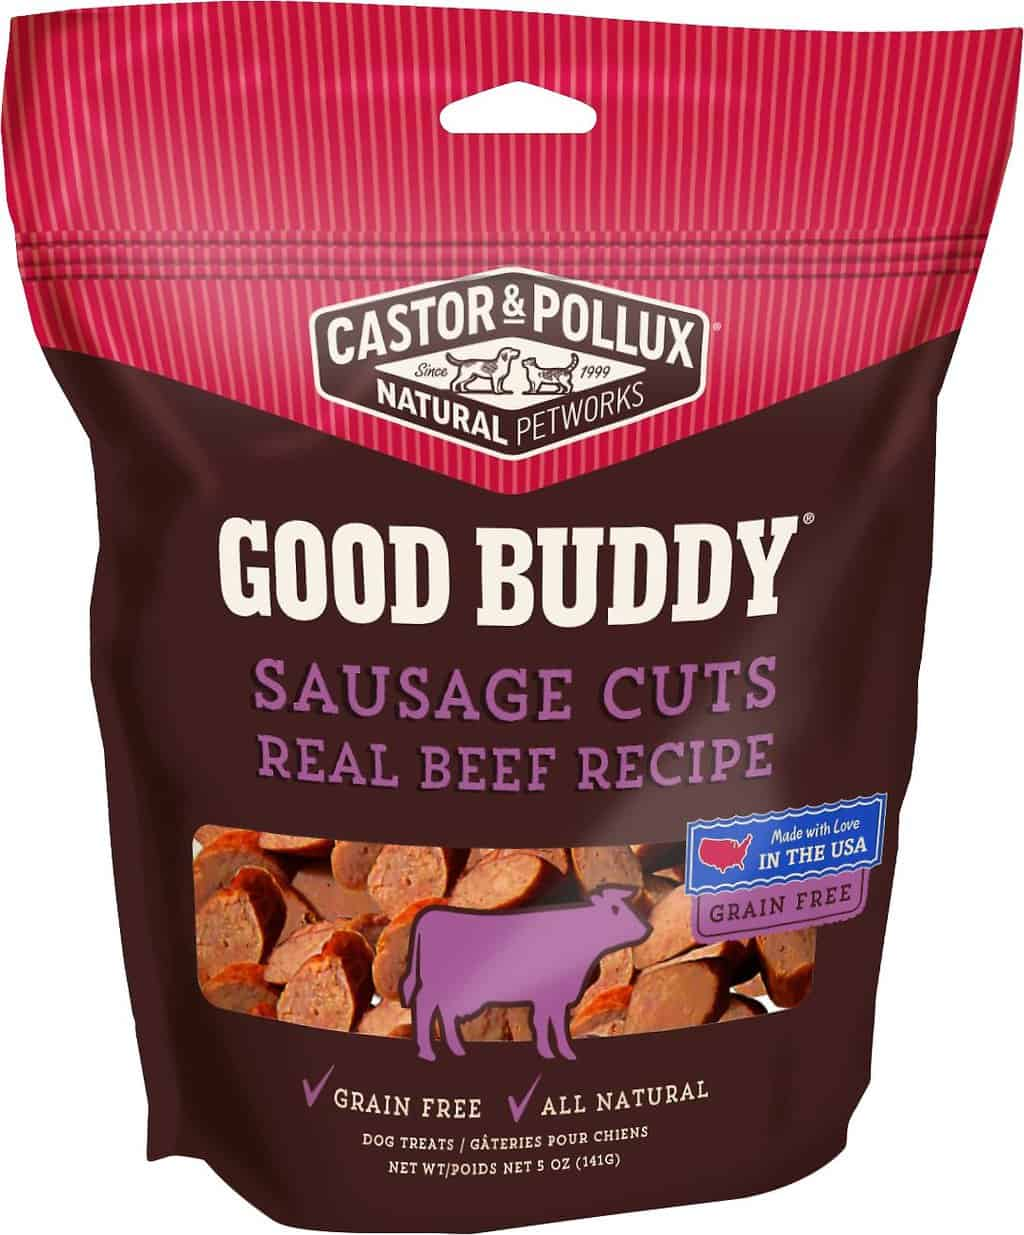 Castor and Pollux Dog Food: 2020 Review, Recalls & Coupons 23